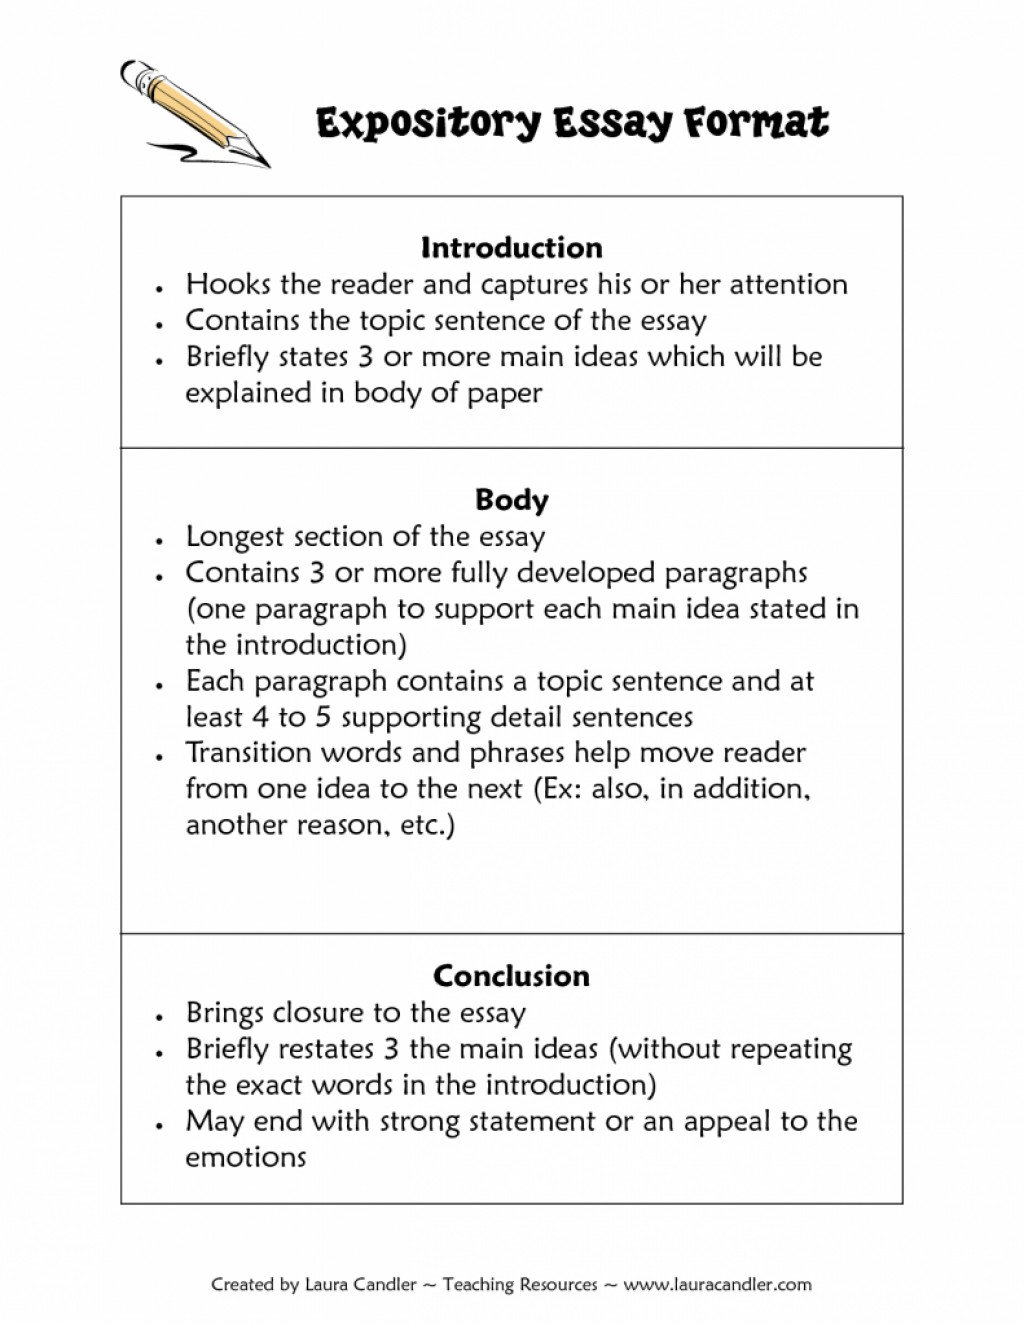 004 Essay Example How To Write An Remarkable Expository 3rd Grade 5th Pdf Large